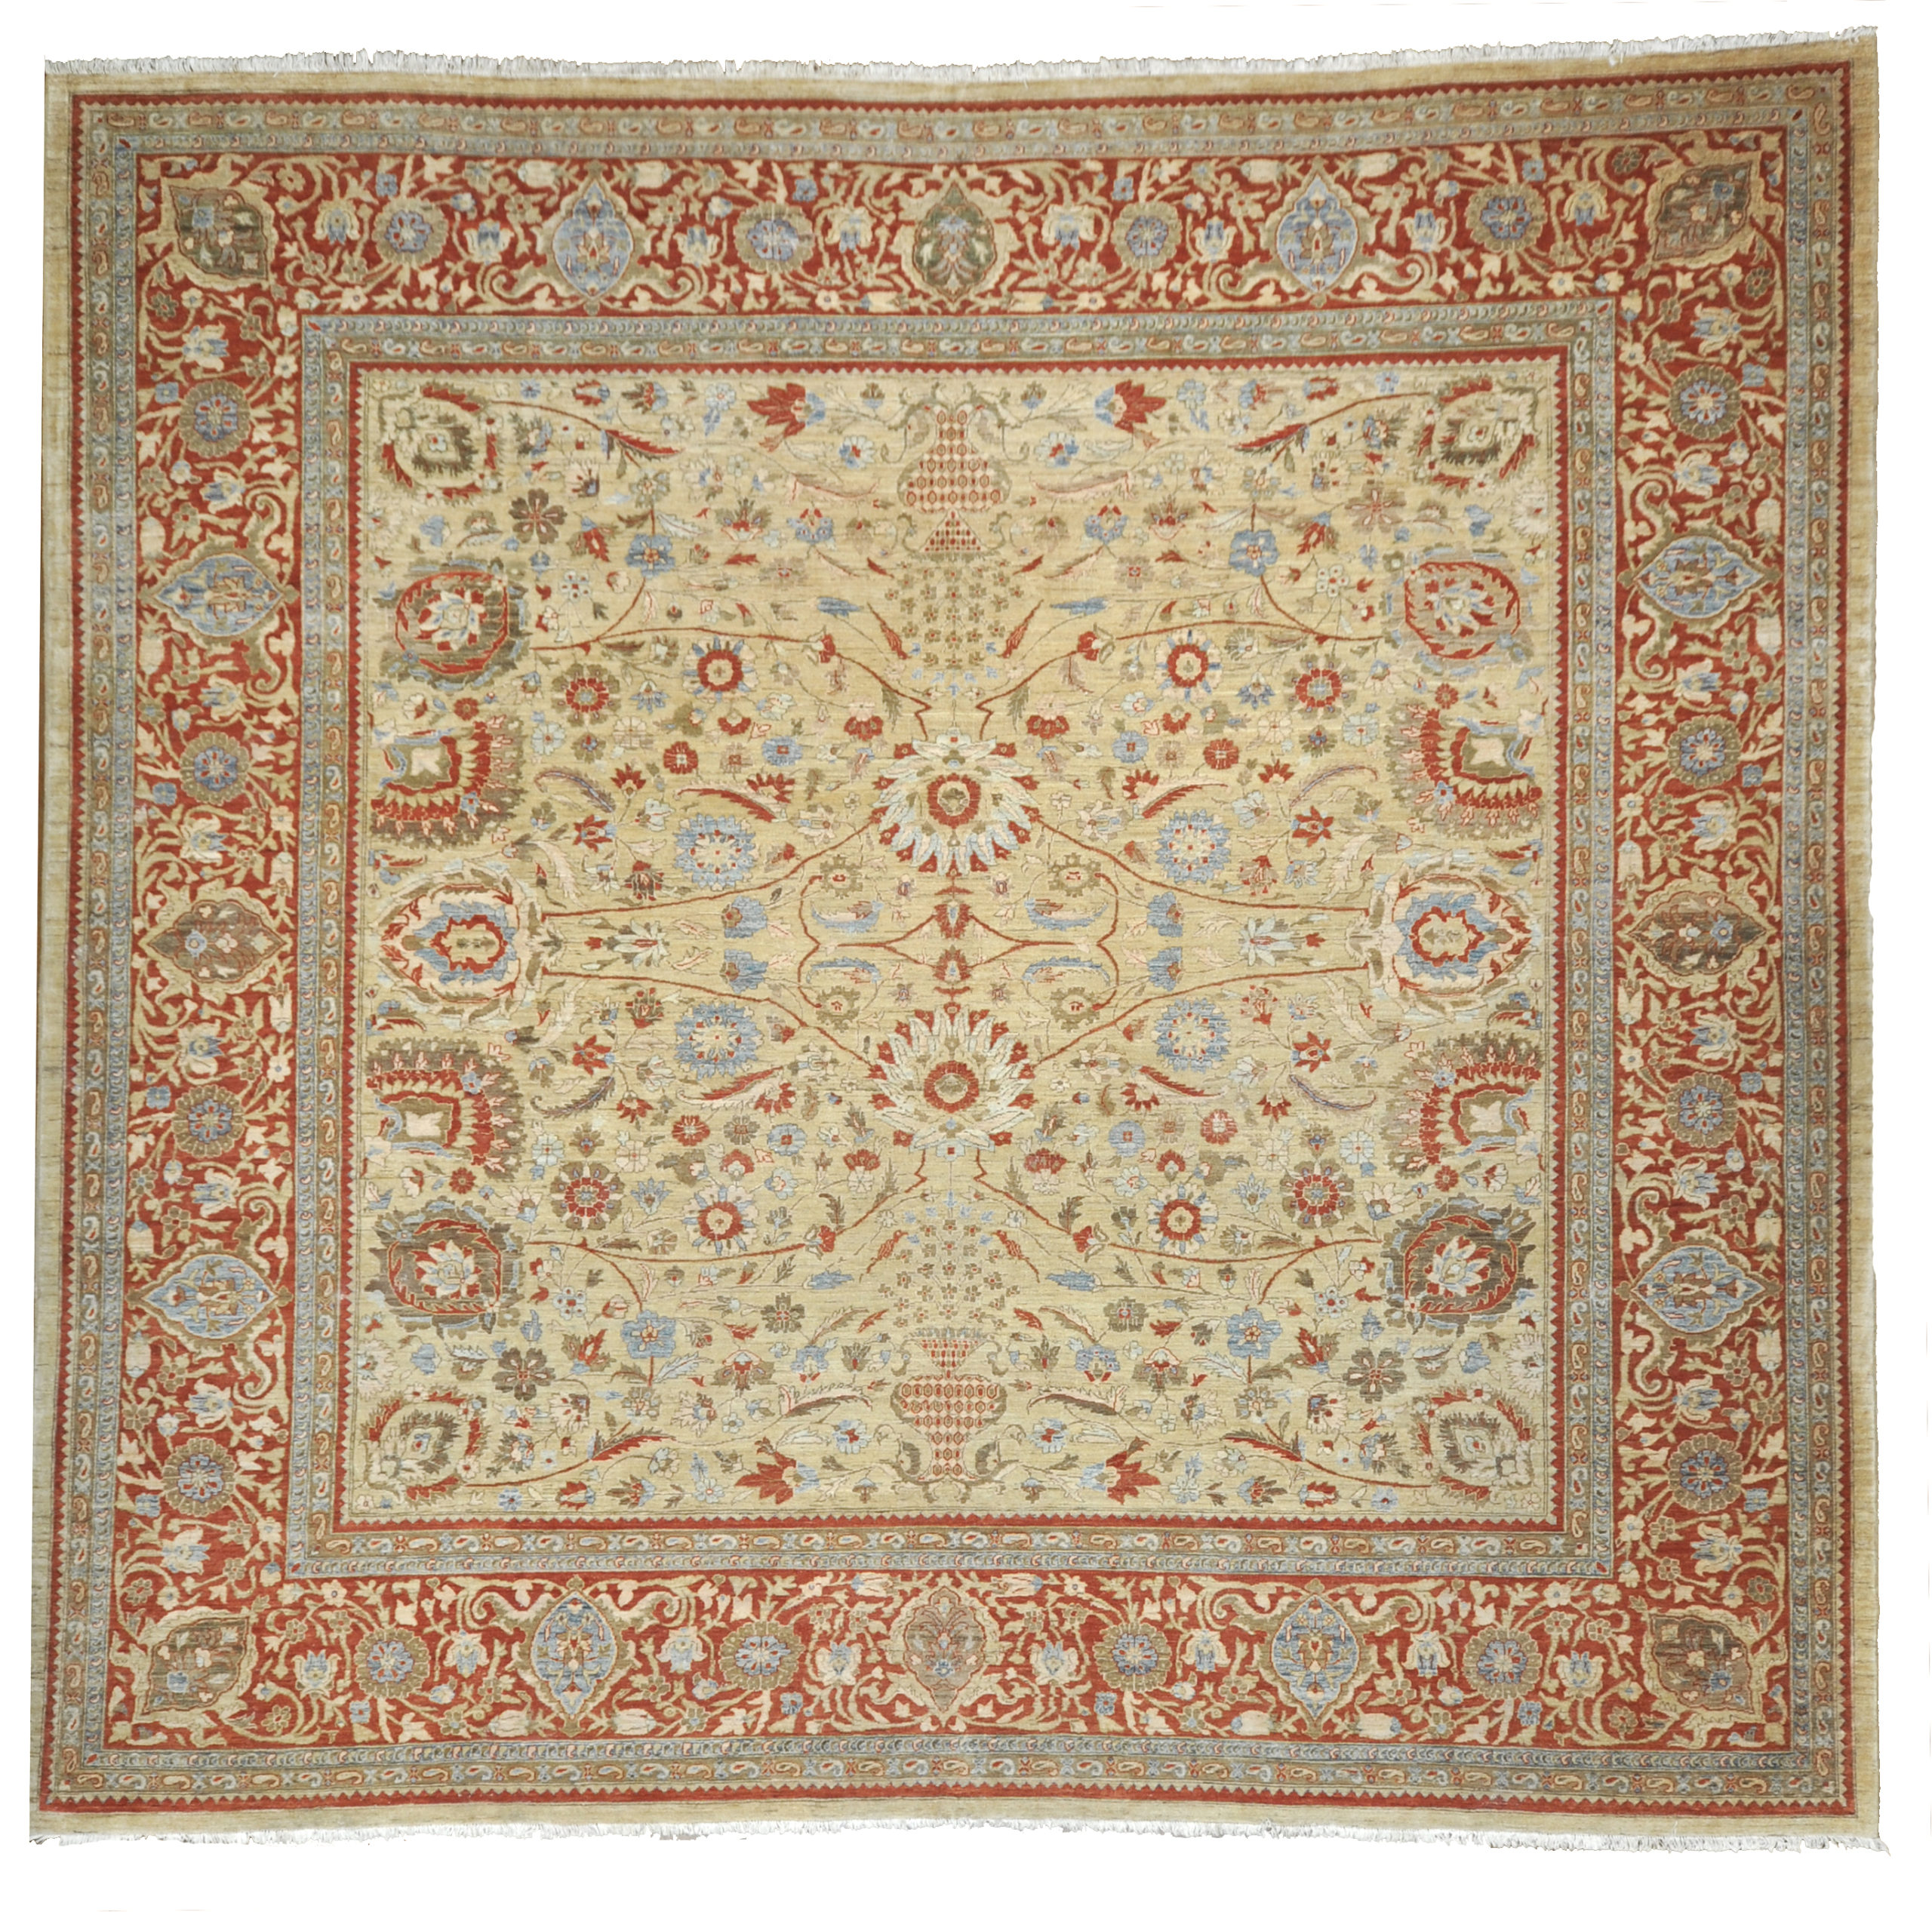 Vintage Ziegler & Co Sultanabad rugs and more -